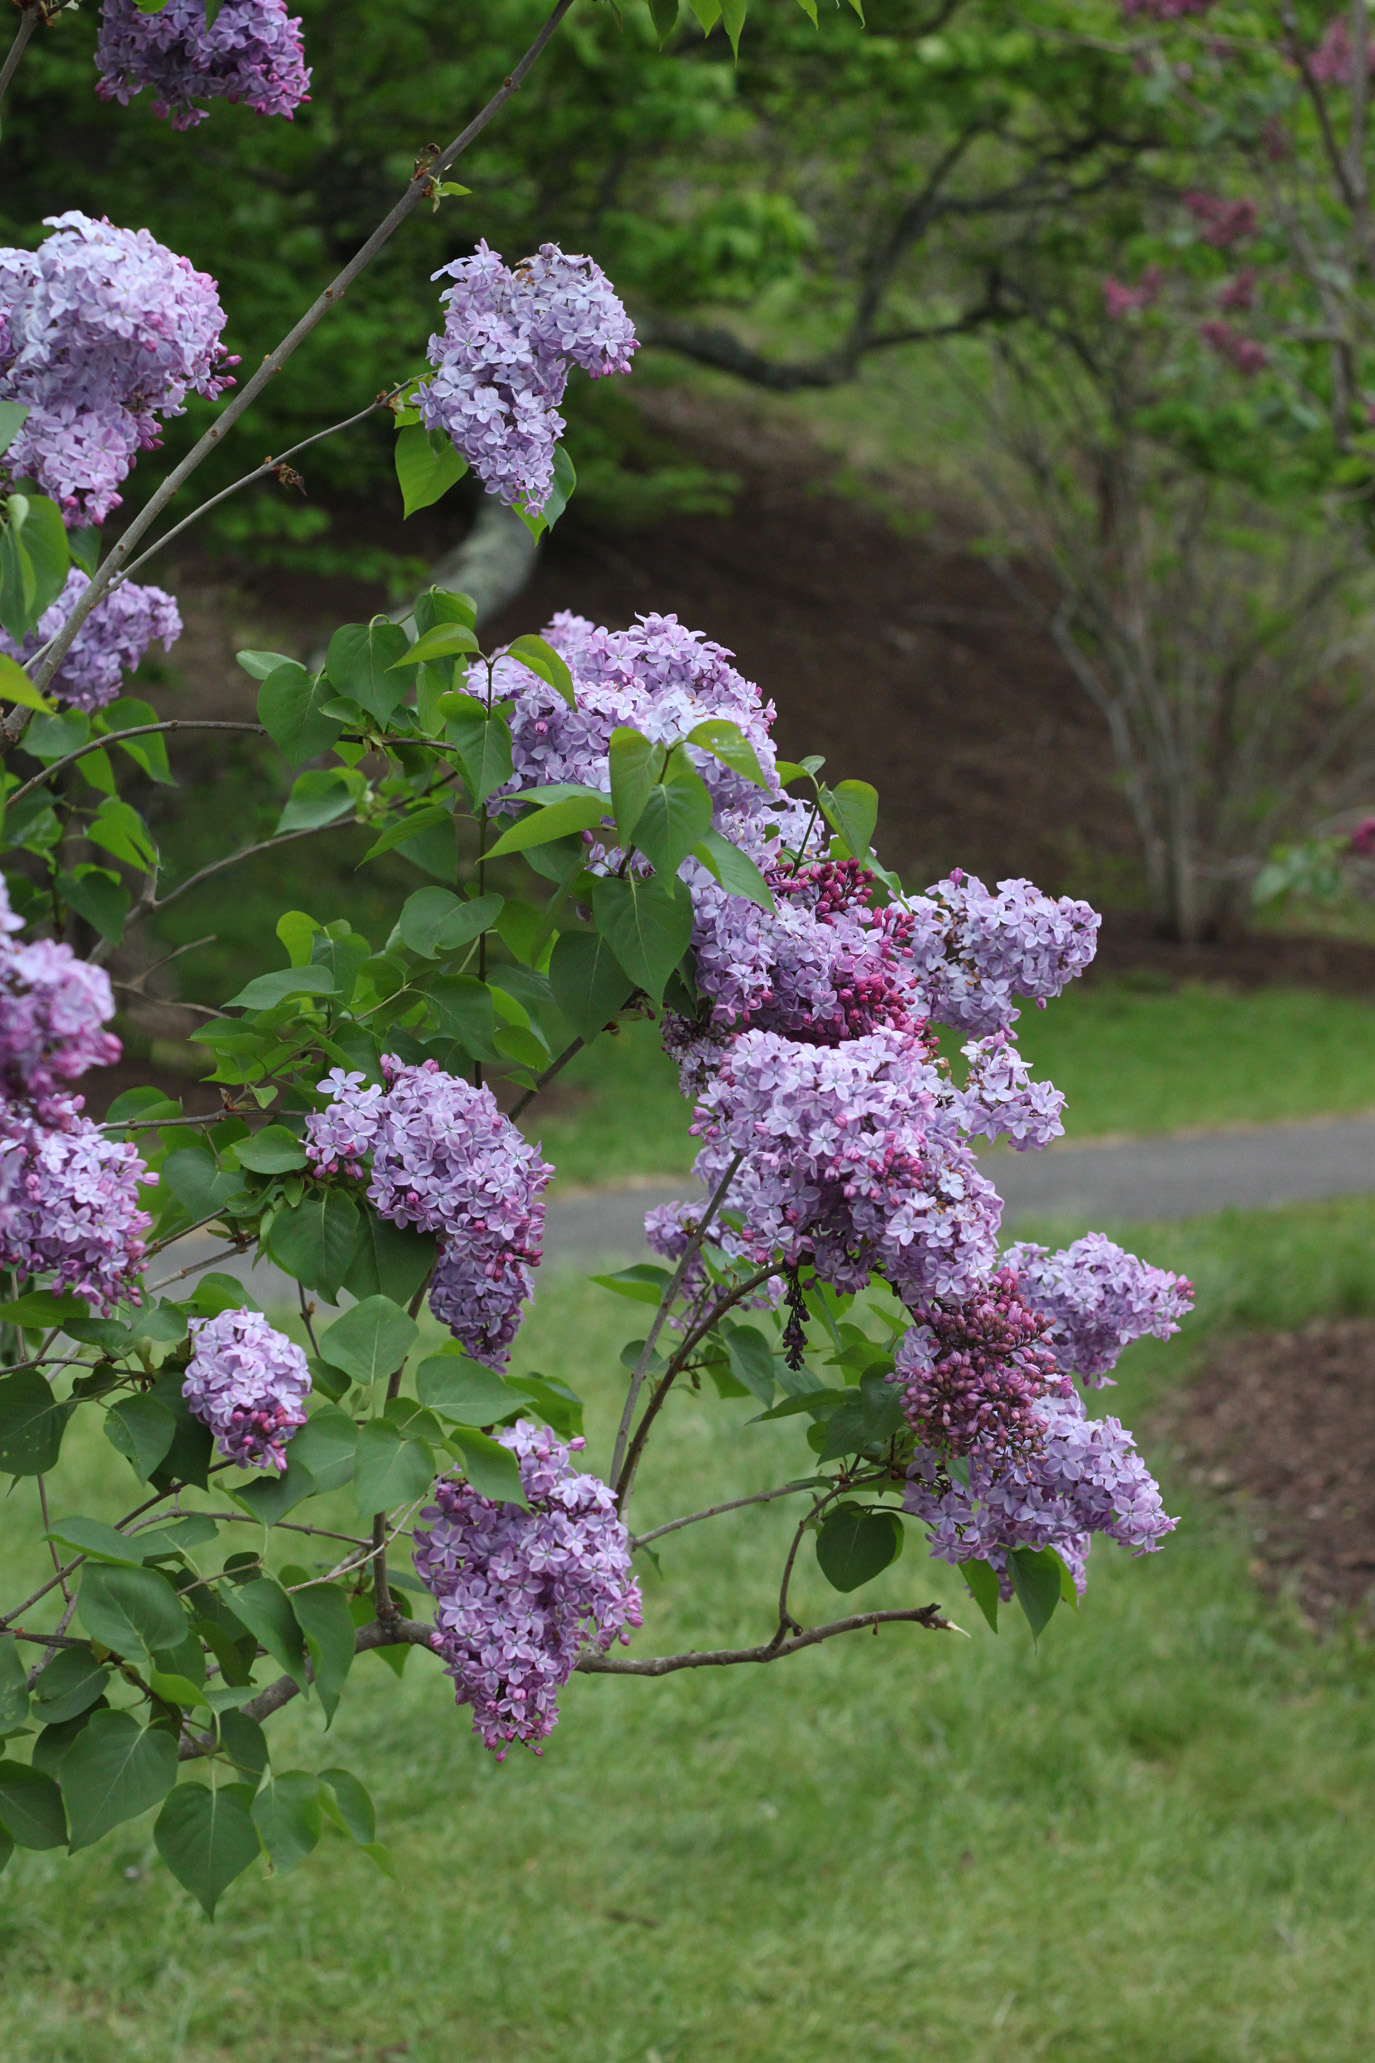 common lilac by Justine Hand for Gardenista